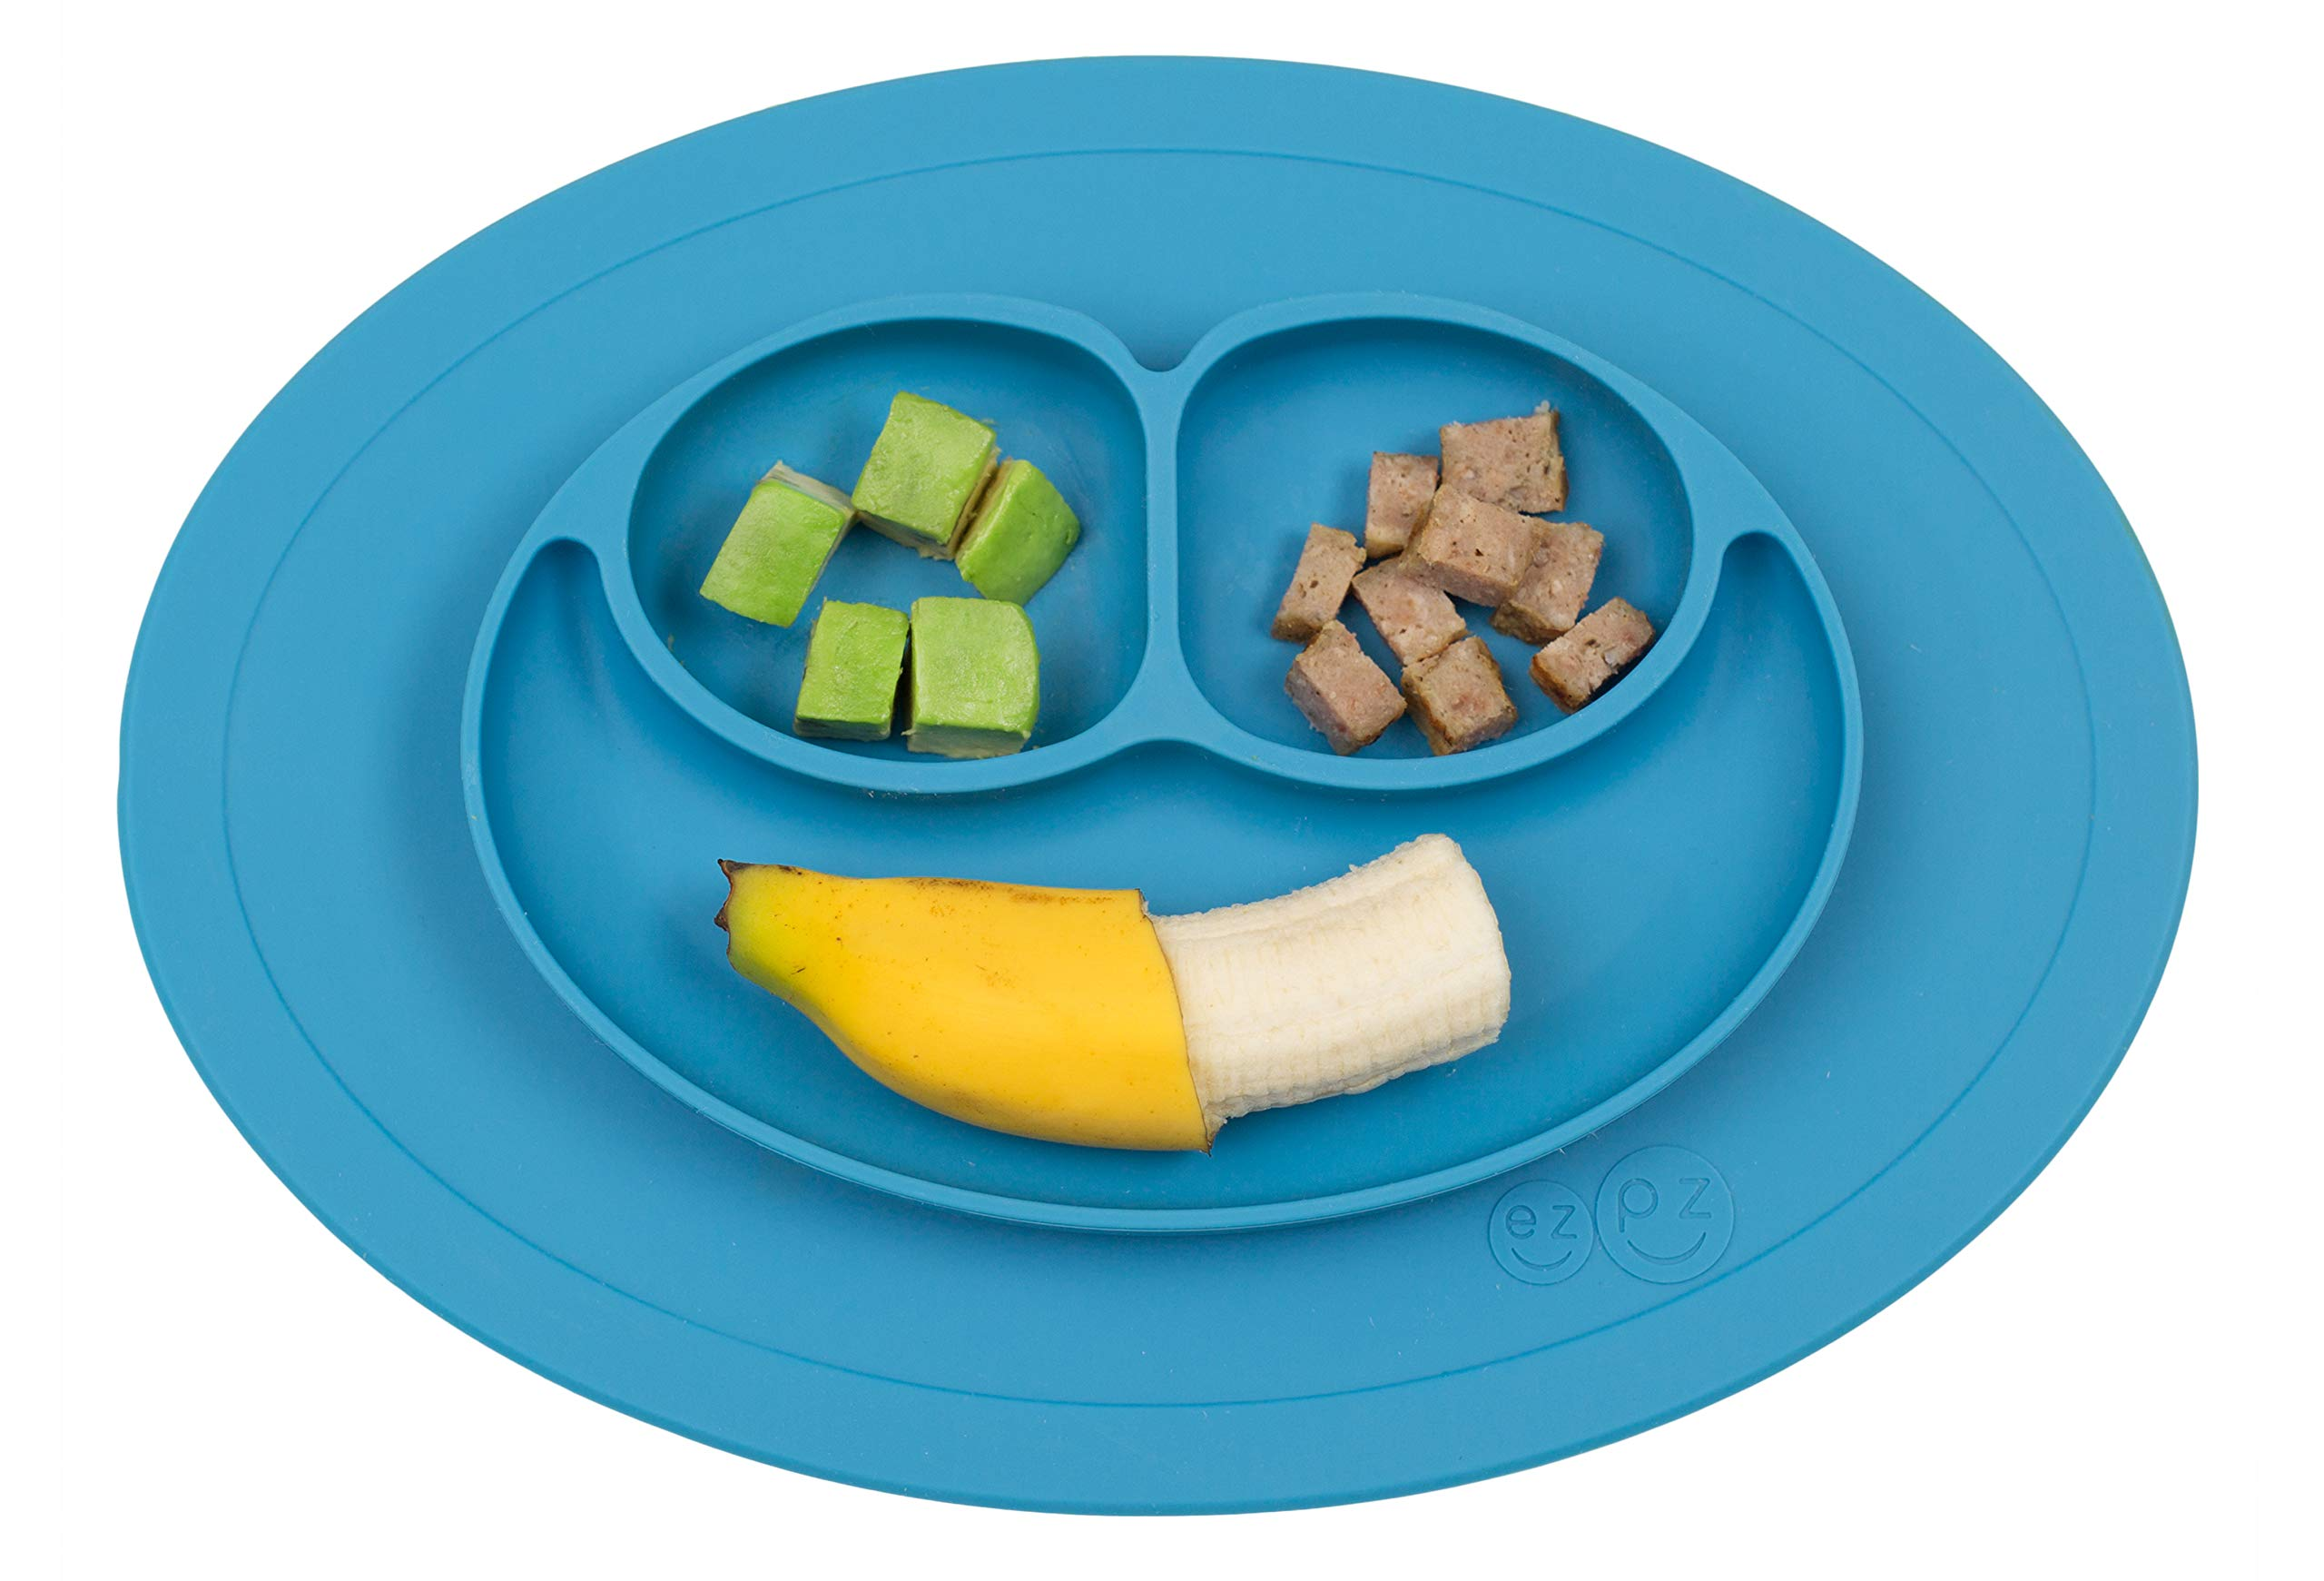 ezpz Mini Mat - One-Piece Silicone placemat + Plate (Blue), One Size by ezpz